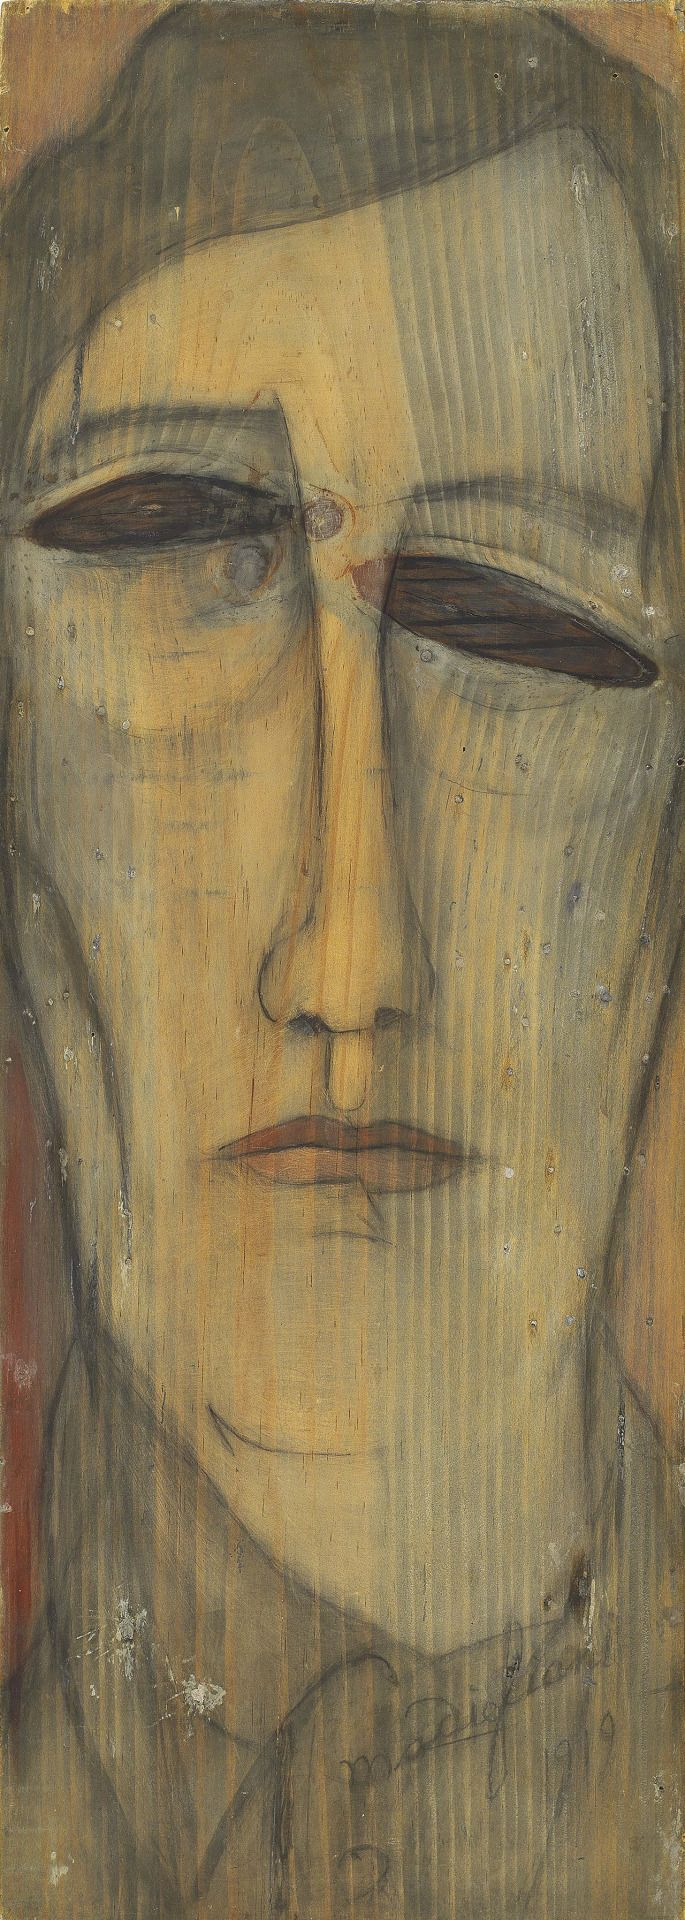 Amedeo Modigliani (Italian, 1884-1920), Autoportrait [Self-portrait], 1919. Oil on board, 52 x 18.5 cm.